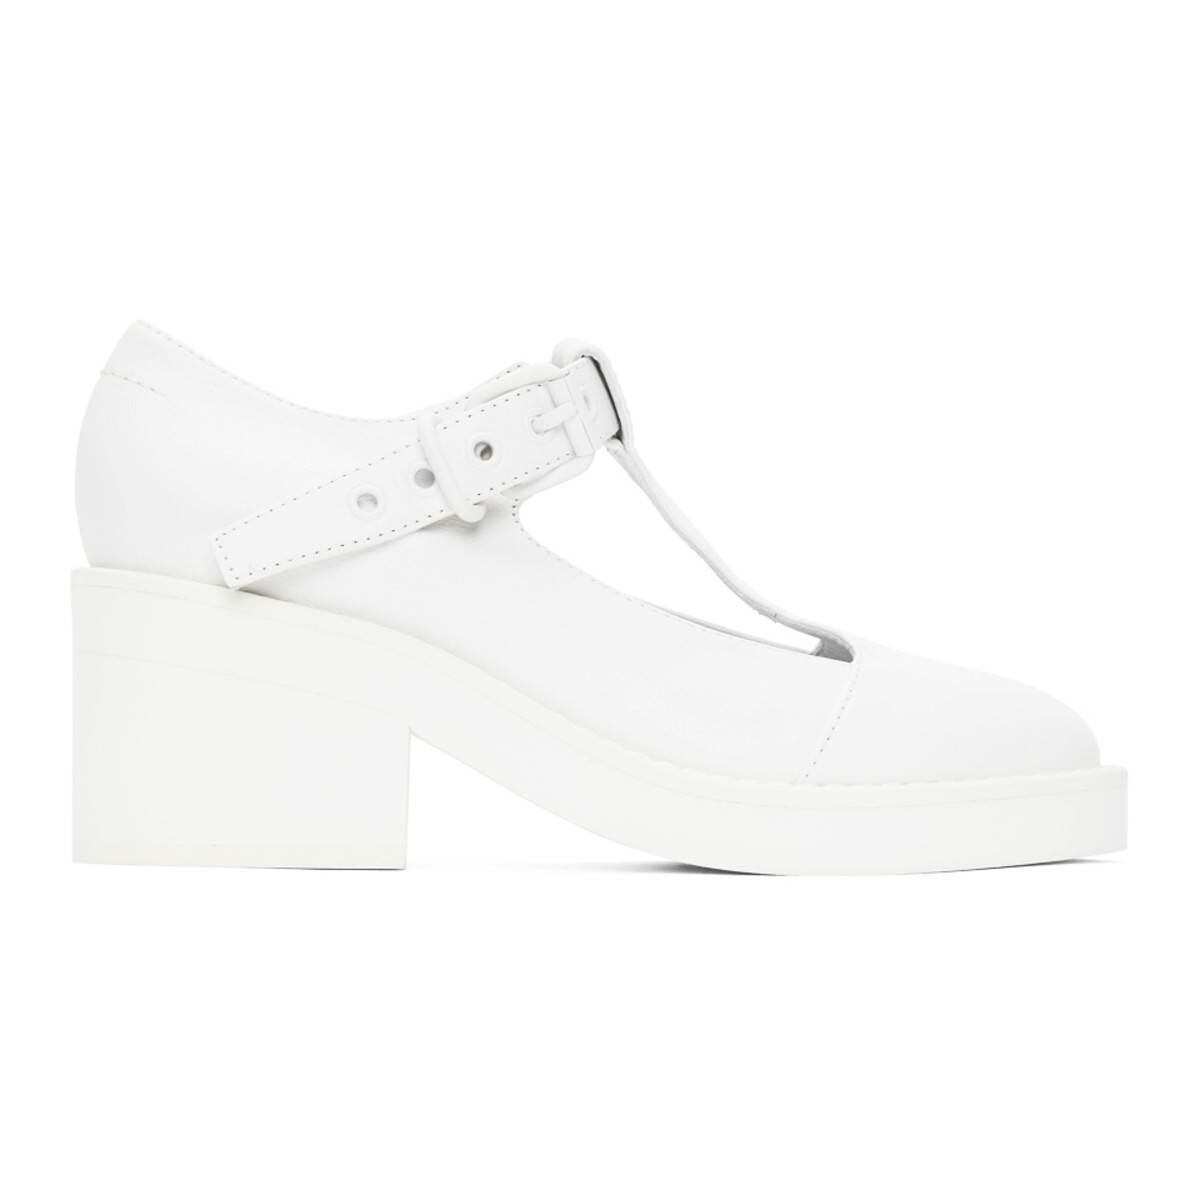 MM6 Maison Margiela White Mary Jane Oxfords Ssense USA WOMEN Women SHOES Womens LEATHER SHOES